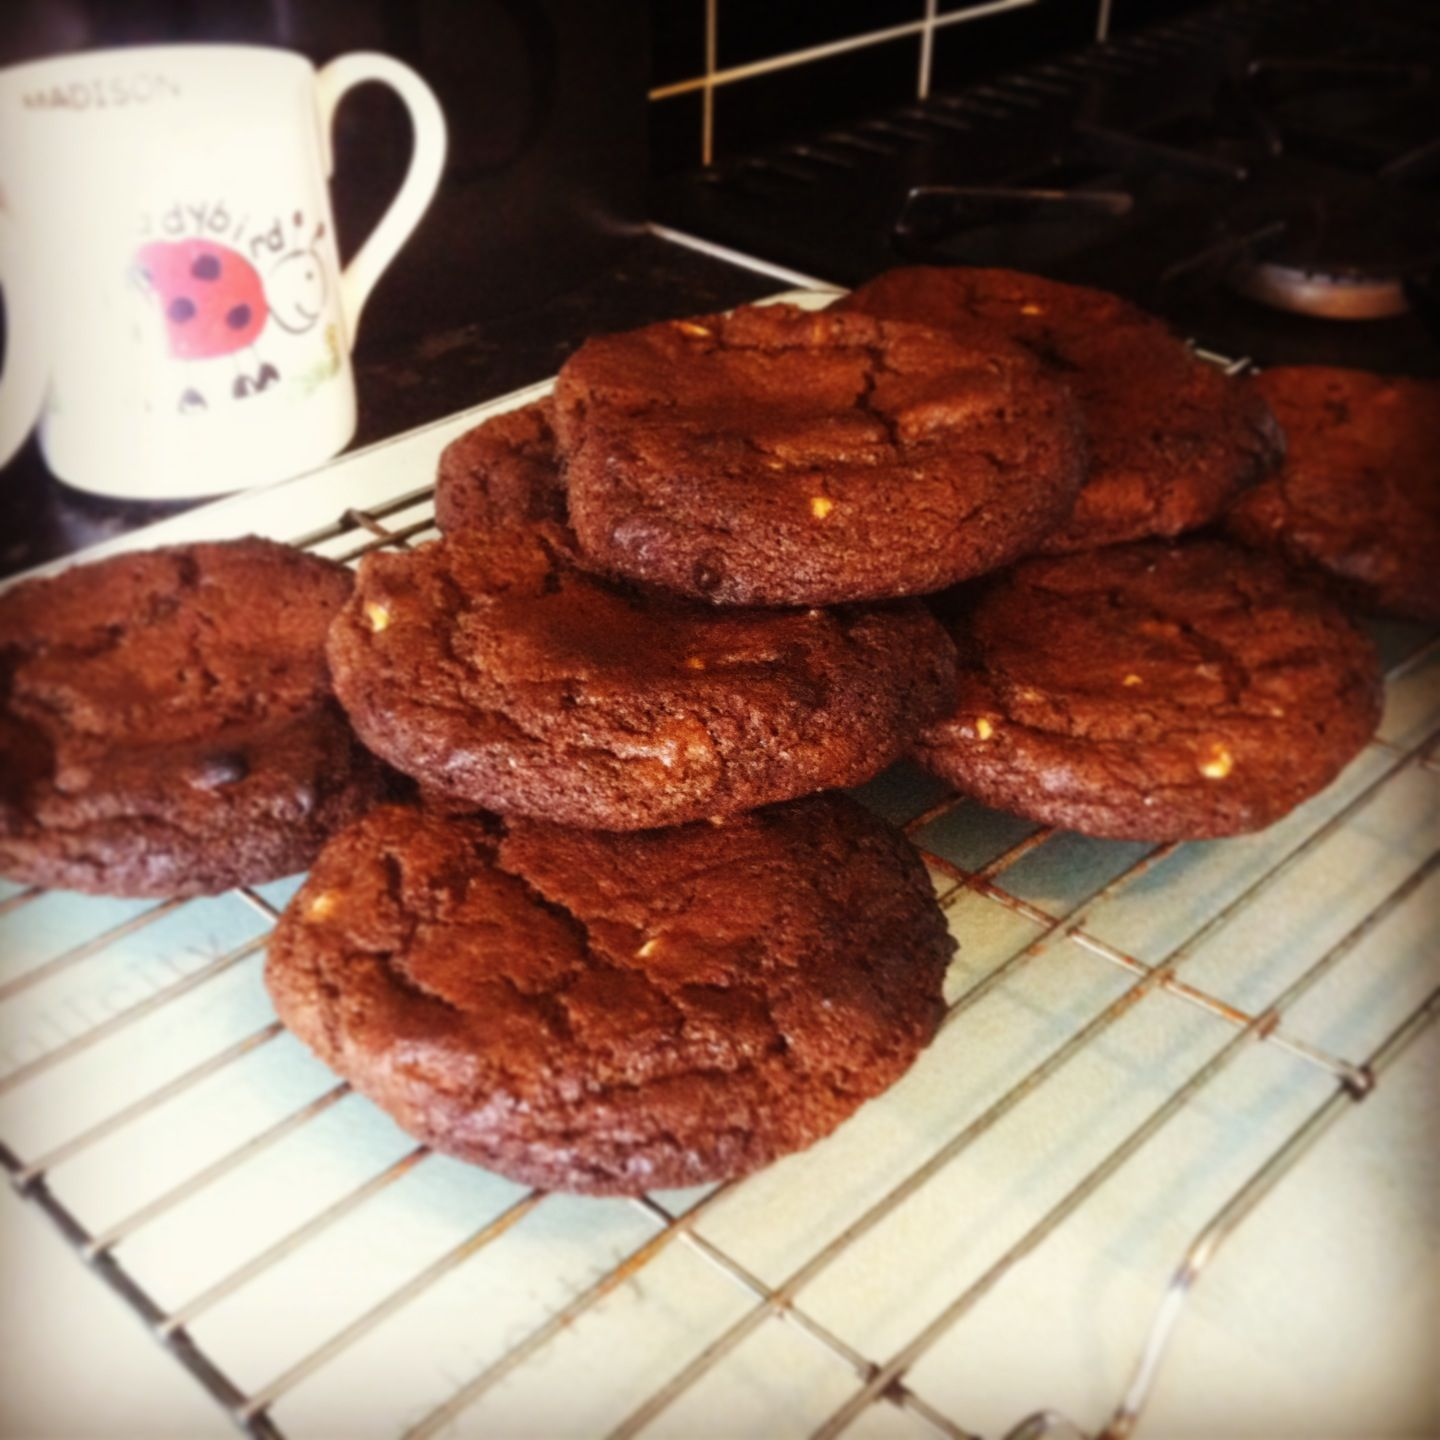 Looking through my old baking photo's is not useful when I've given up chocolate for lent. Not long now!!